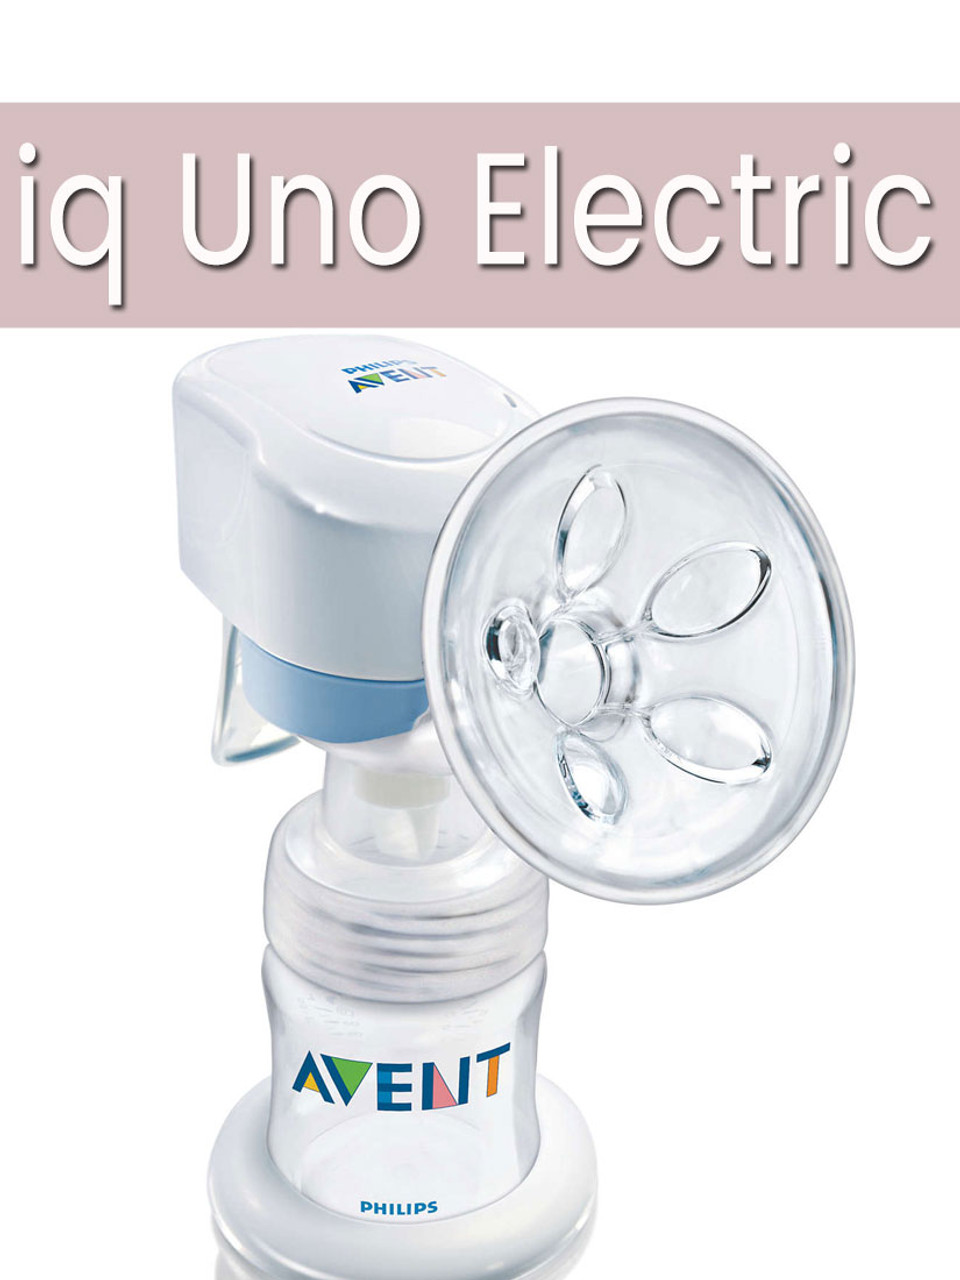 Philips Avent Electric Breast Pump Parts Isis Iq Uno Order